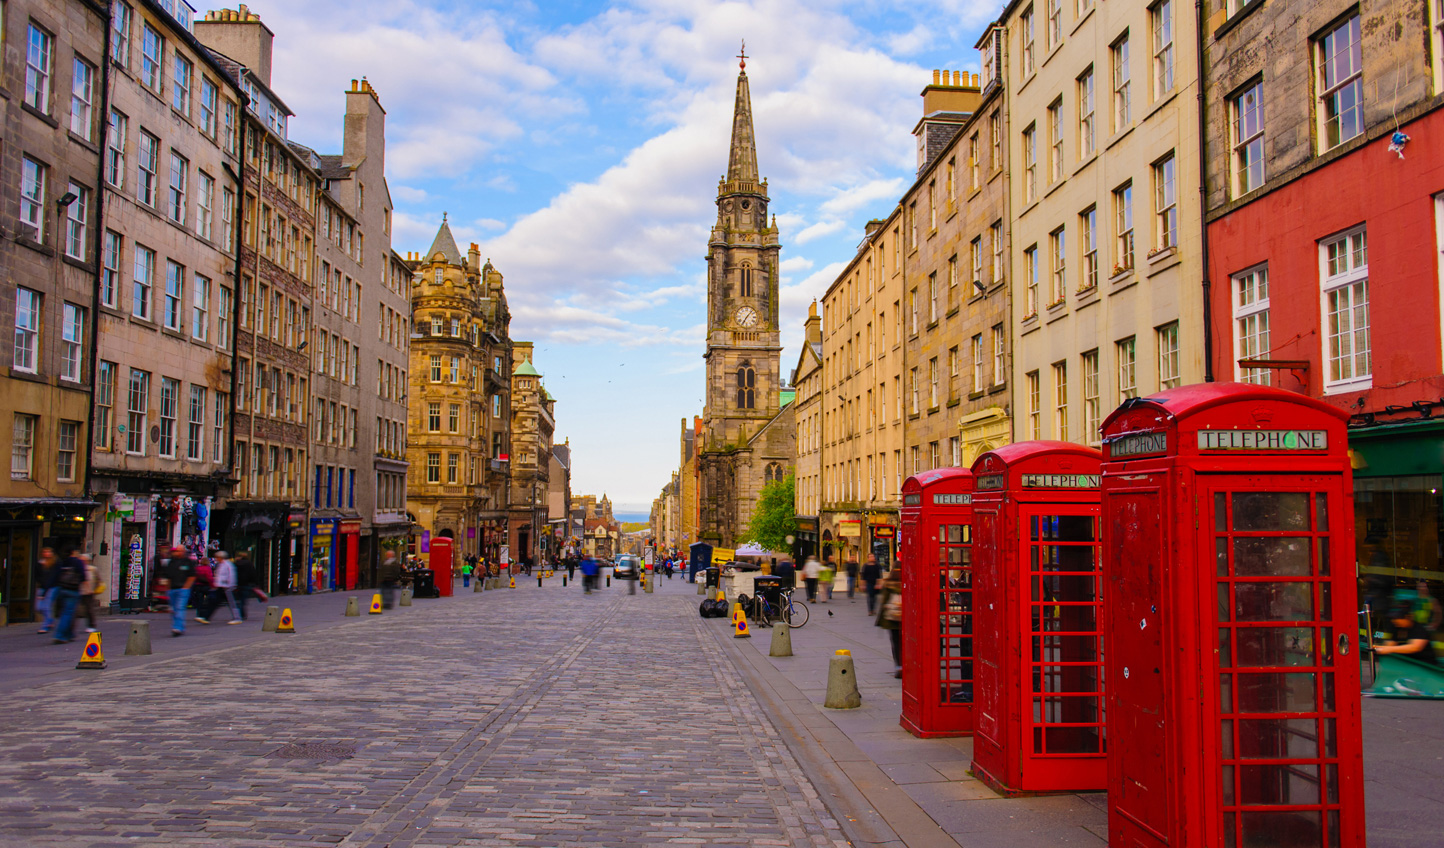 Soak up the history of the Royal Mile